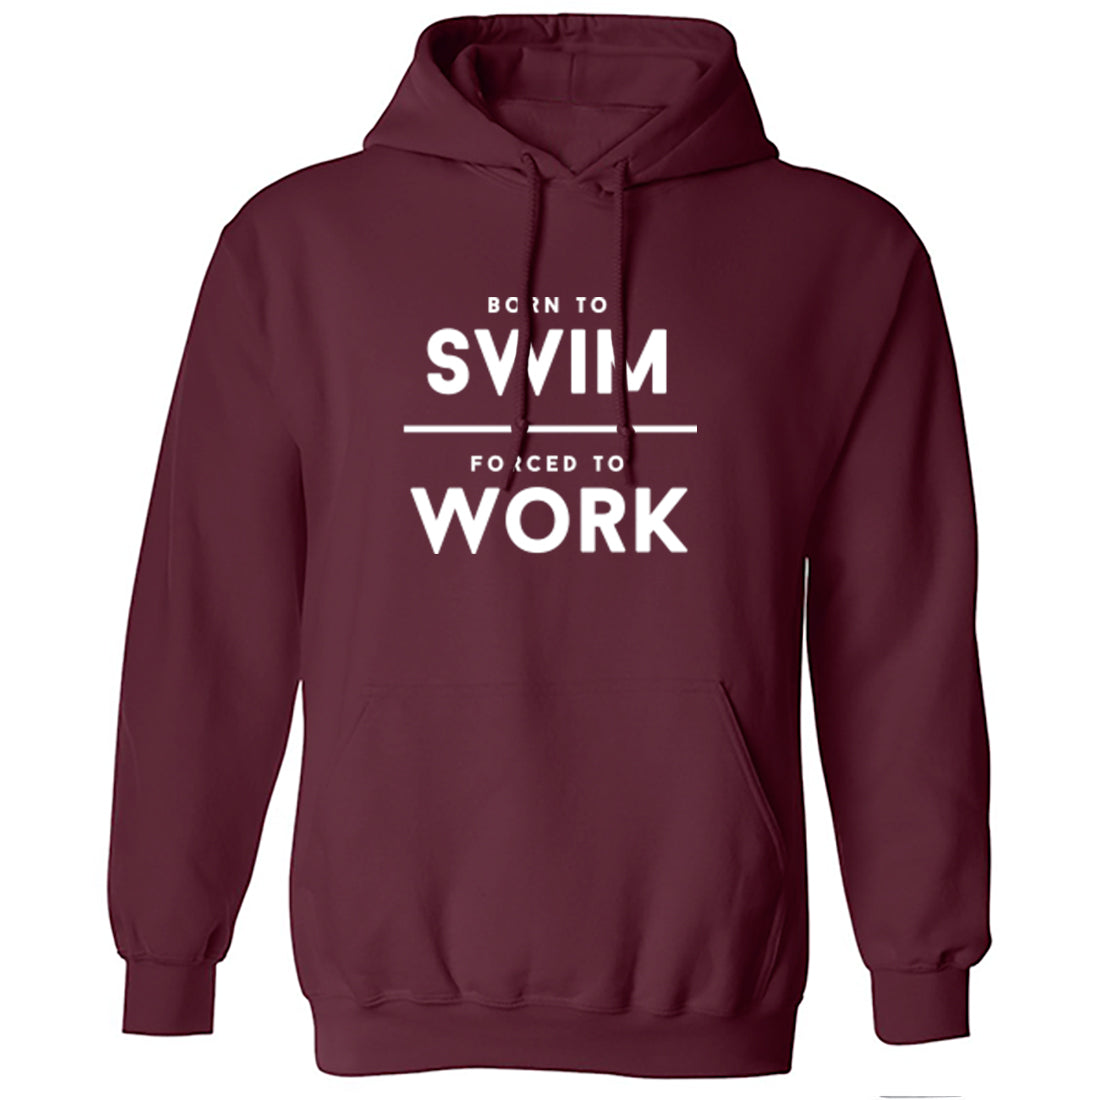 Born To Swim Forced To Work Unisex Hoodie K2027 - Illustrated Identity Ltd.